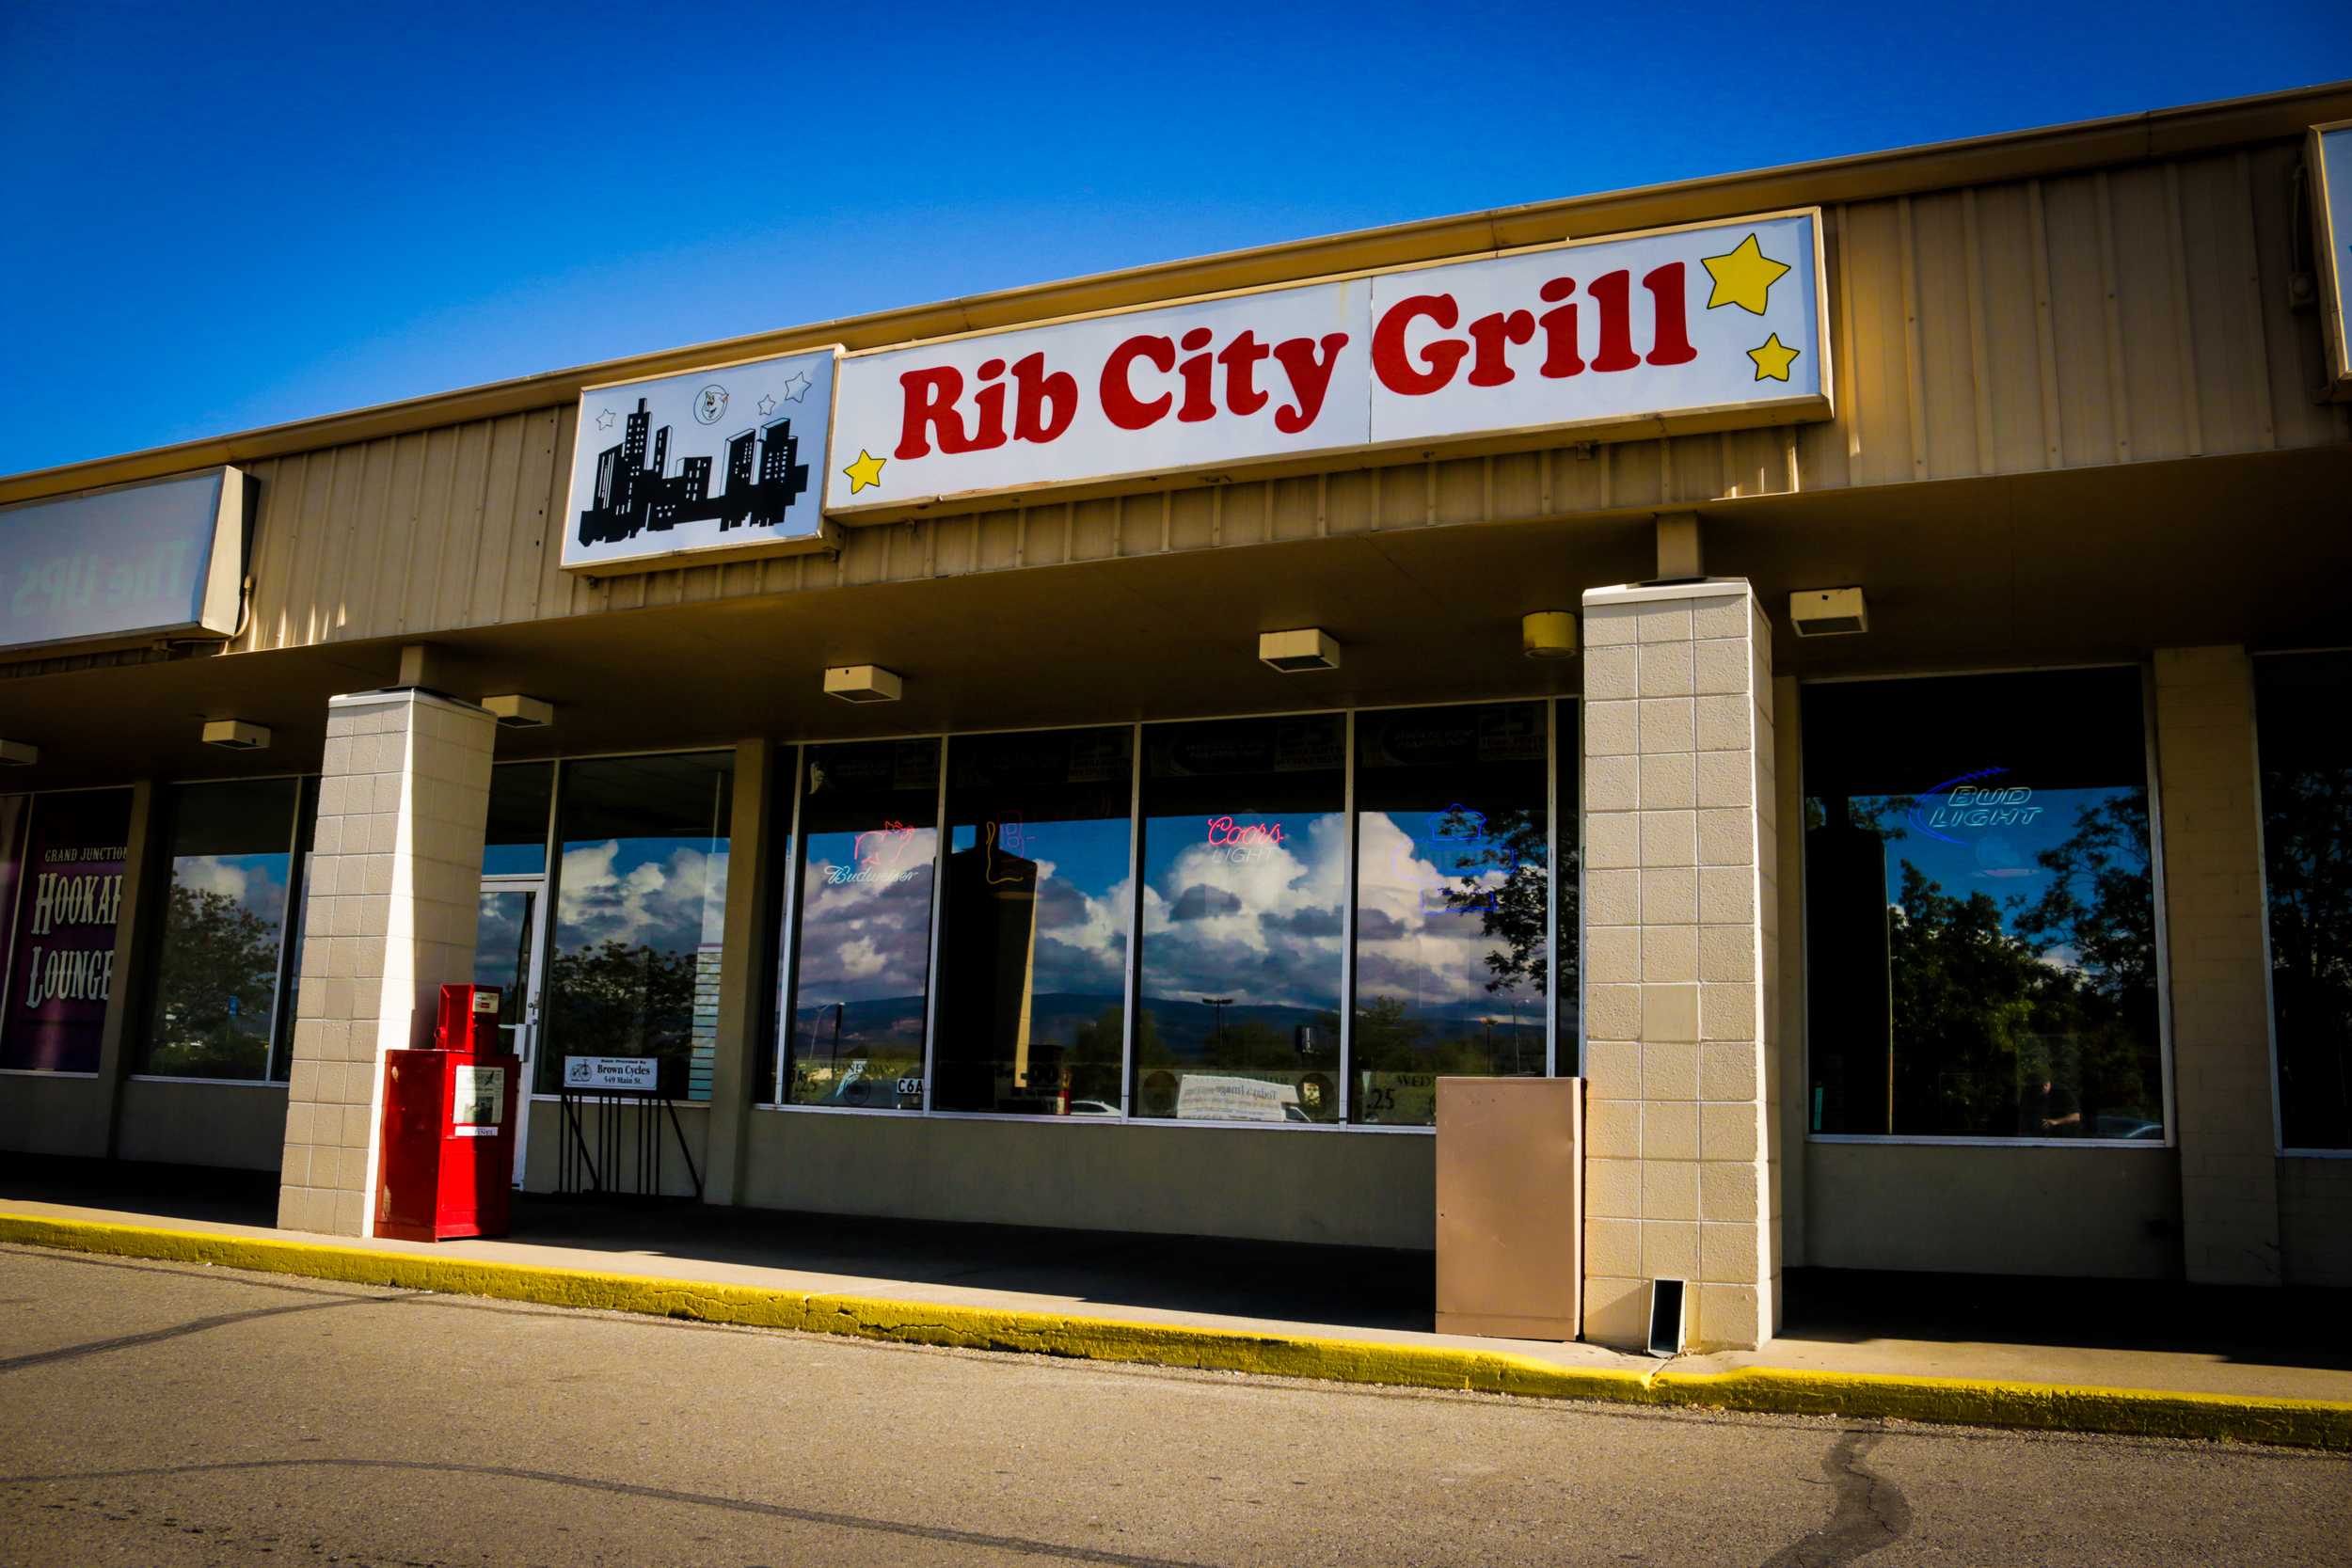 Rib City Grill Grand Junction, Colorado